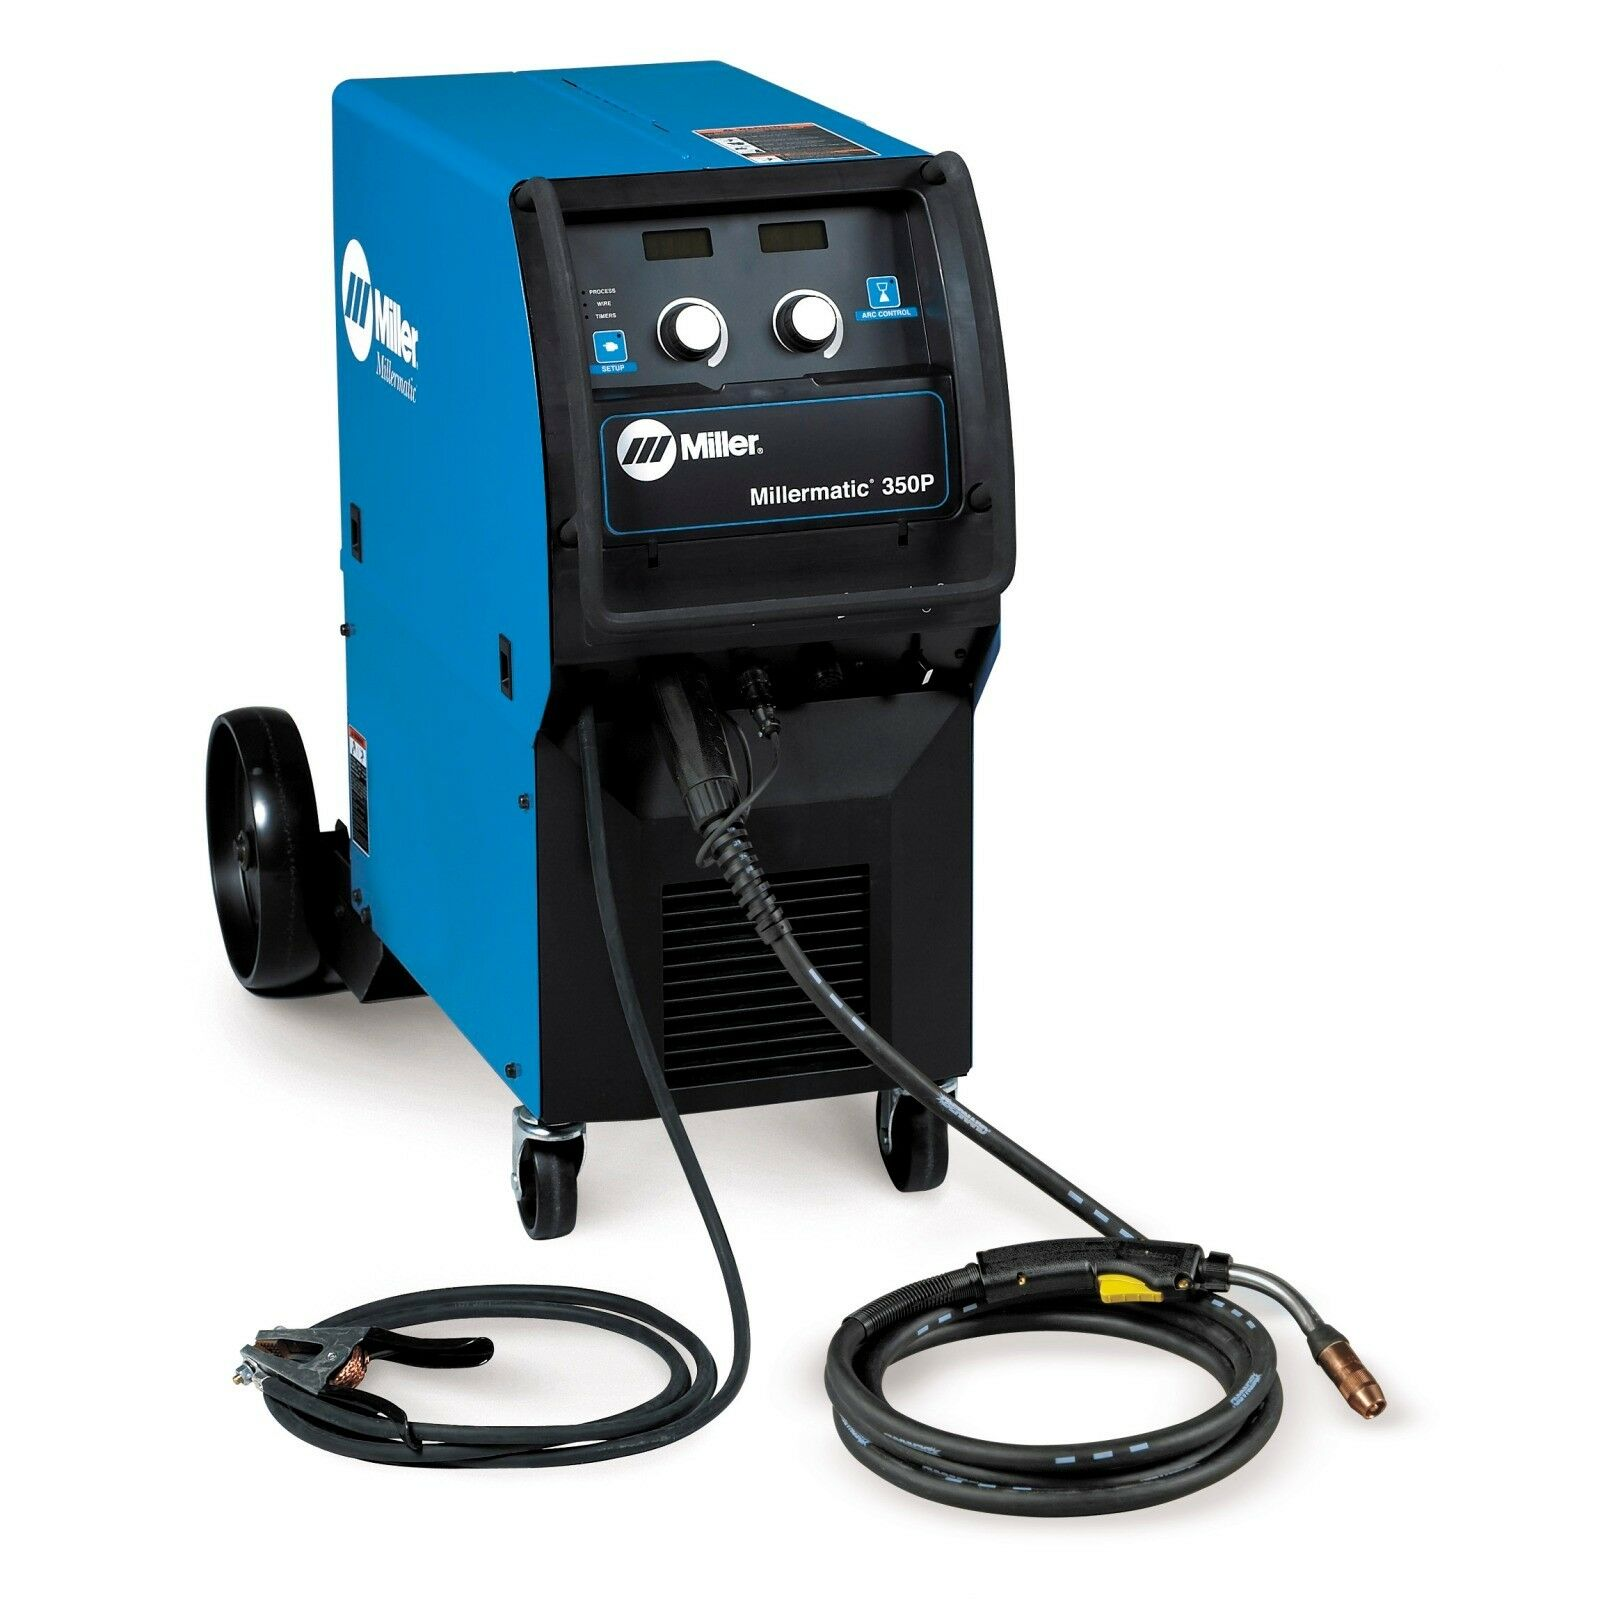 Miller Millermatic 350p Mig Welding Pkg 907300 For Sale Online Ebay